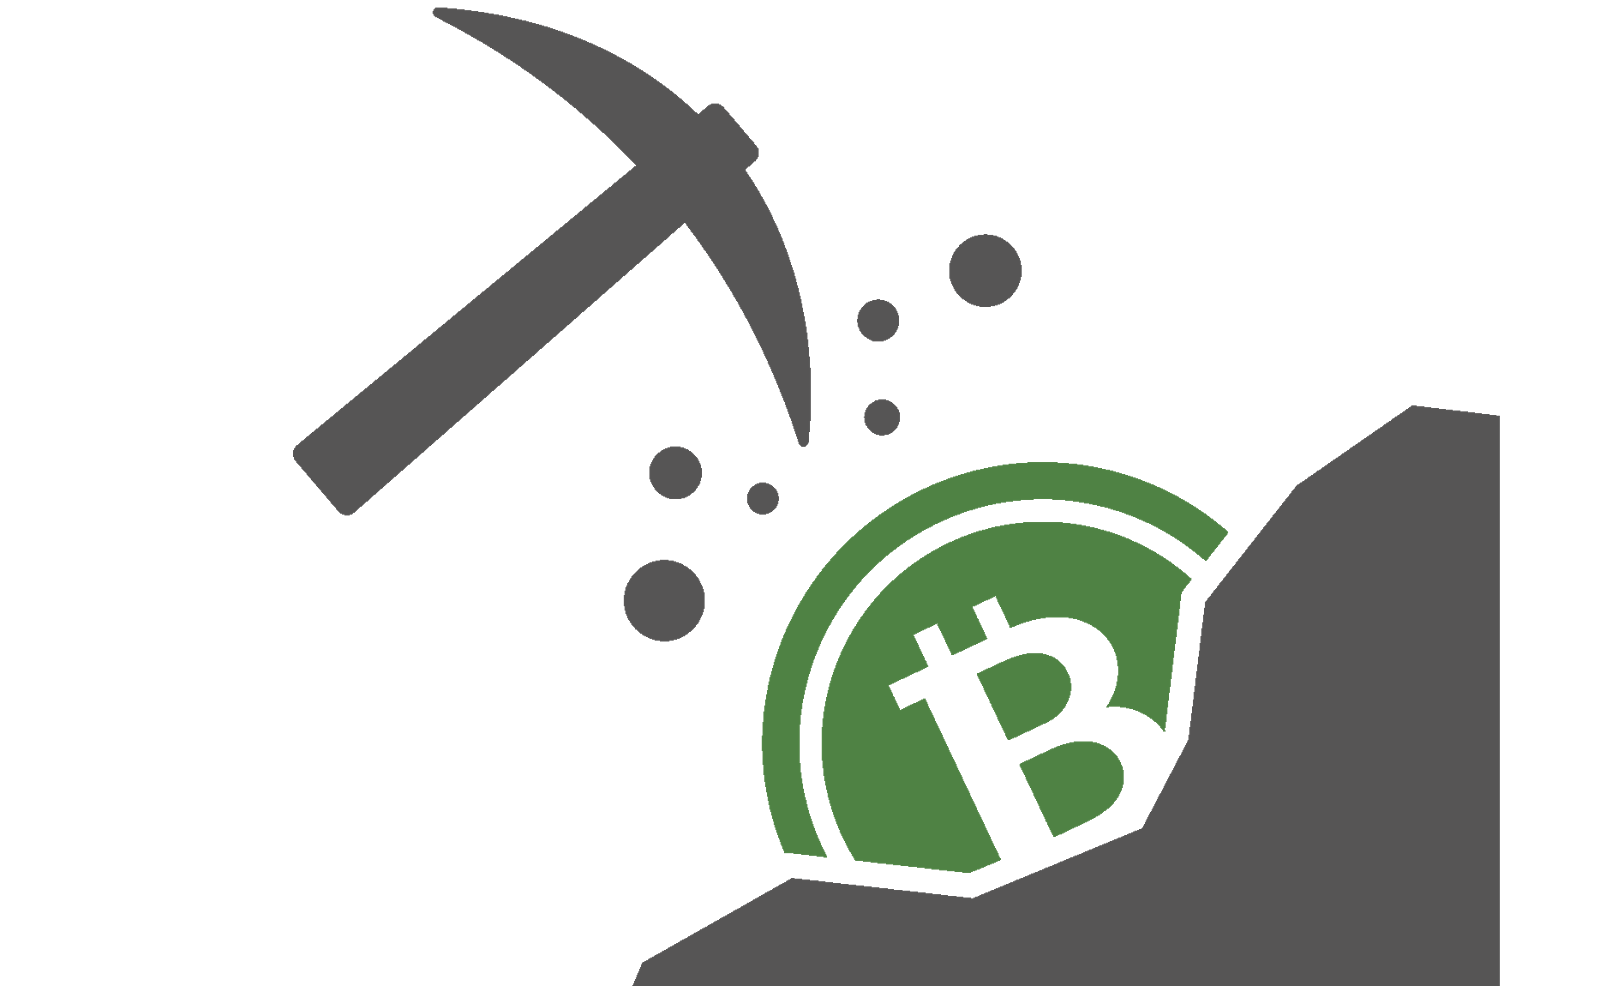 Cryptocurrency Mining Pool Bitcoin Cloud Free HQ Image PNG Image